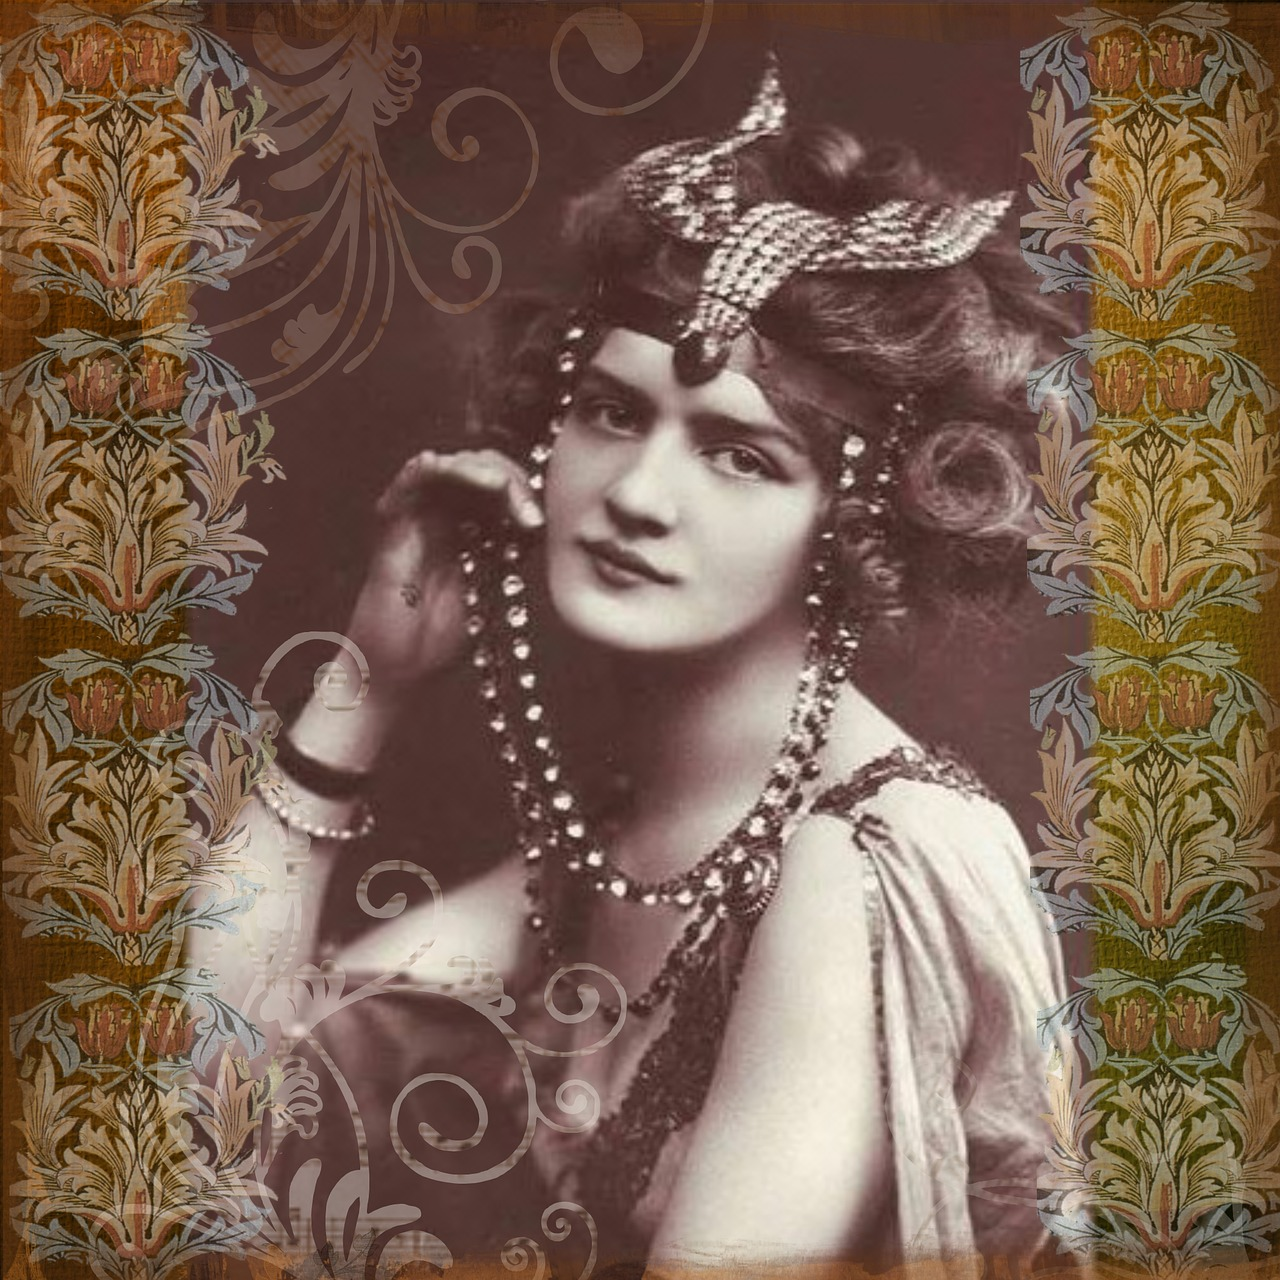 vintage lady digital art free picture